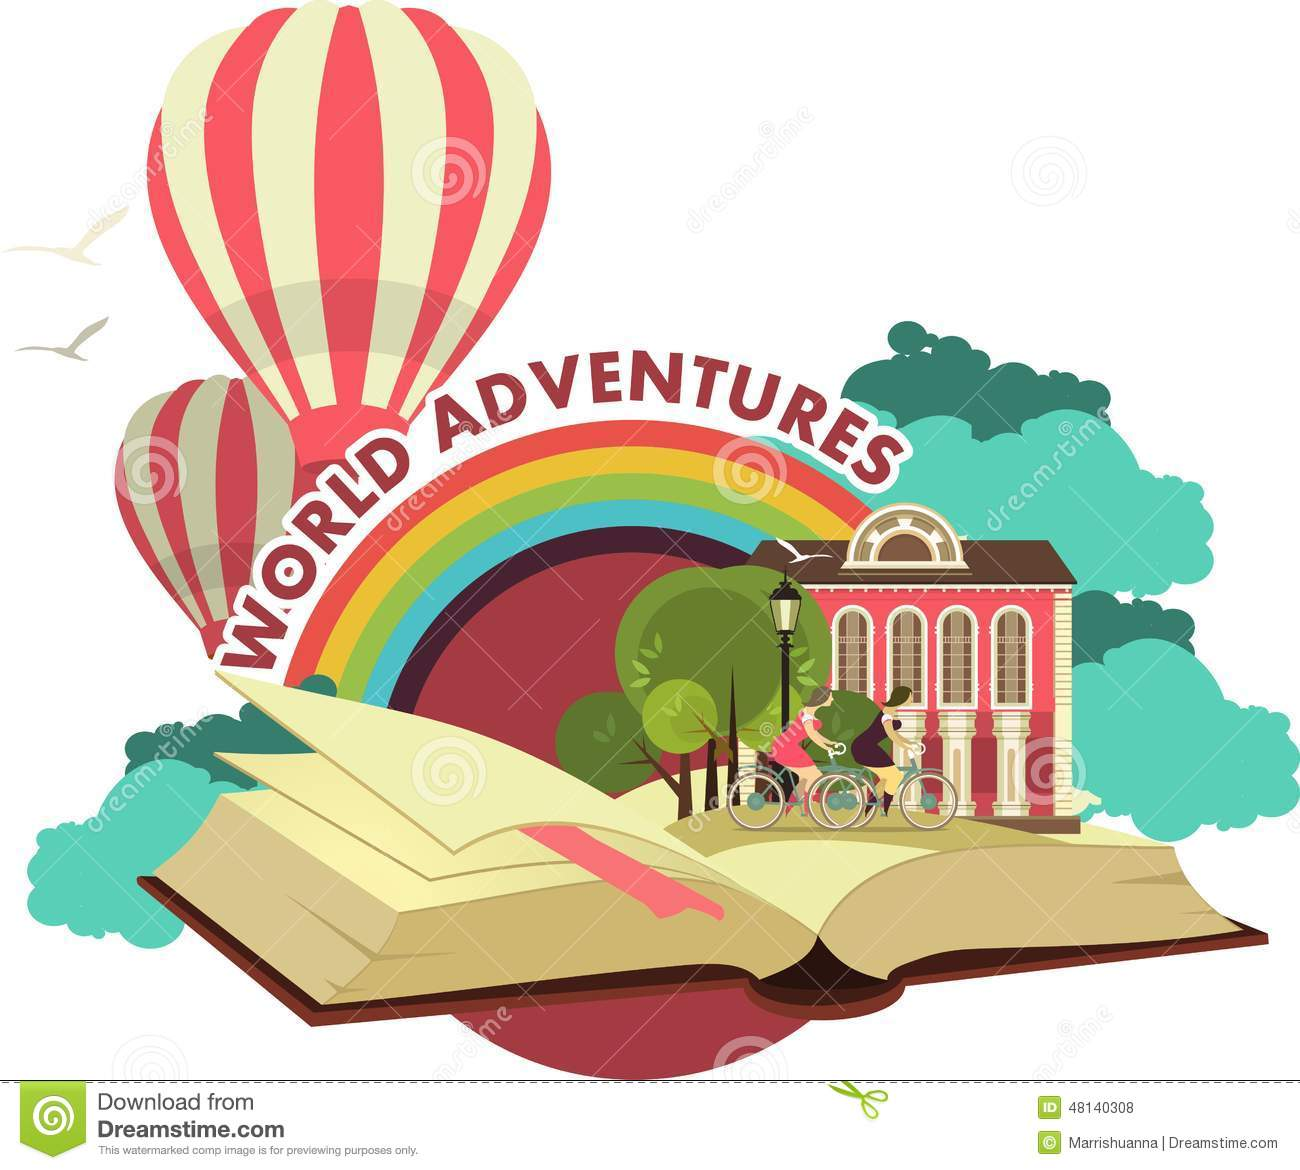 Adventure Book Clipart Open Trip To Fabulous Worlds Emblem Stock.